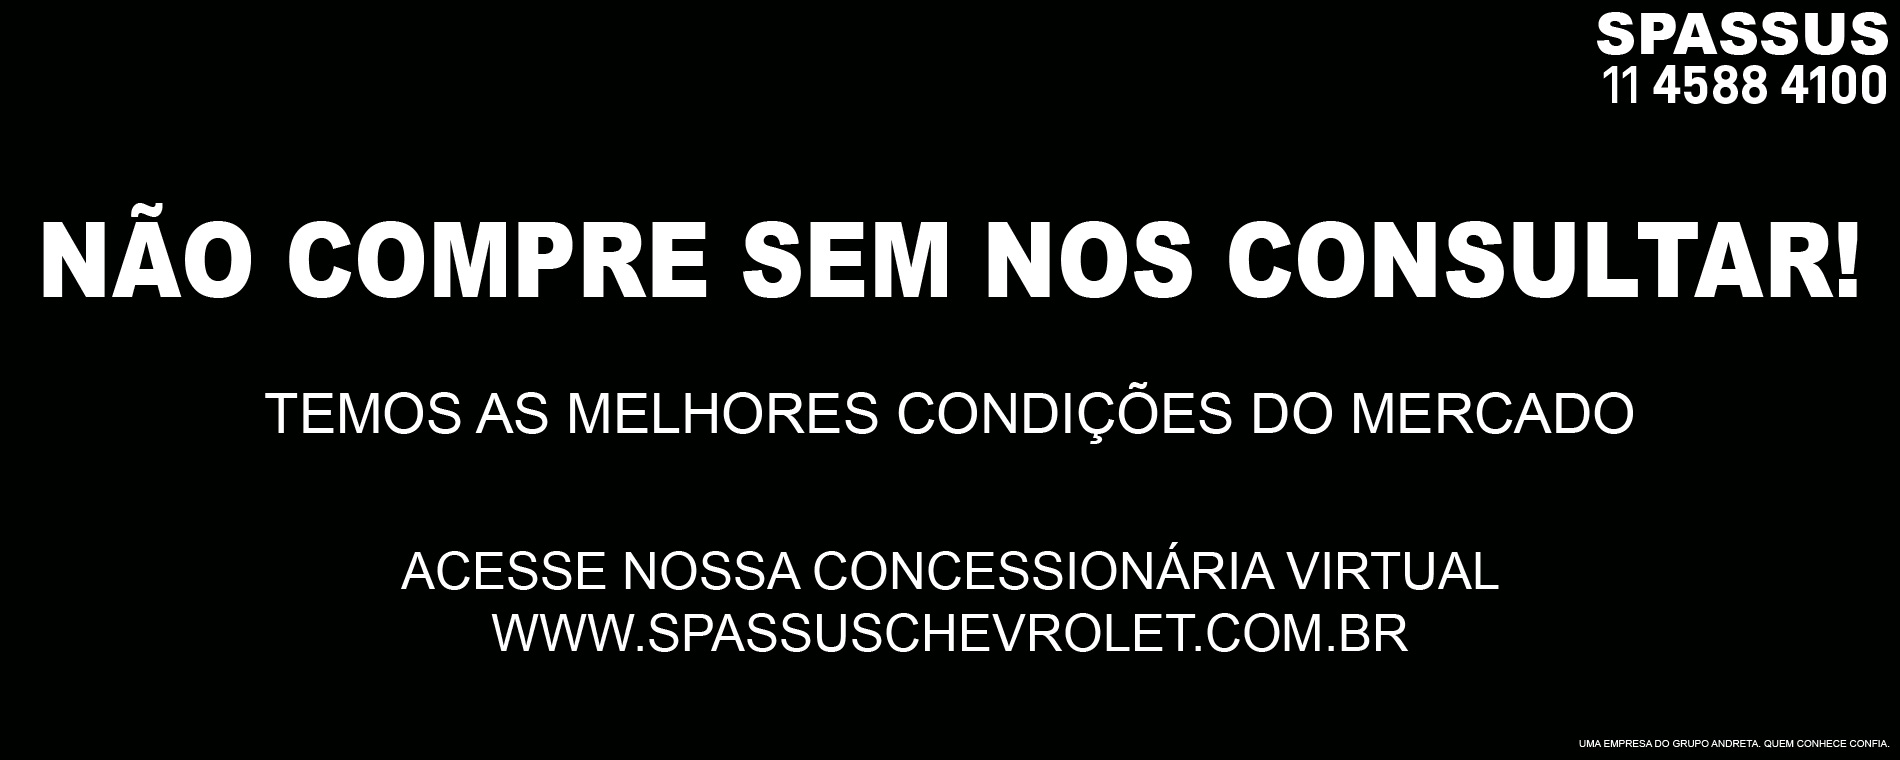 Spassus - Digitais Consultar (Home)